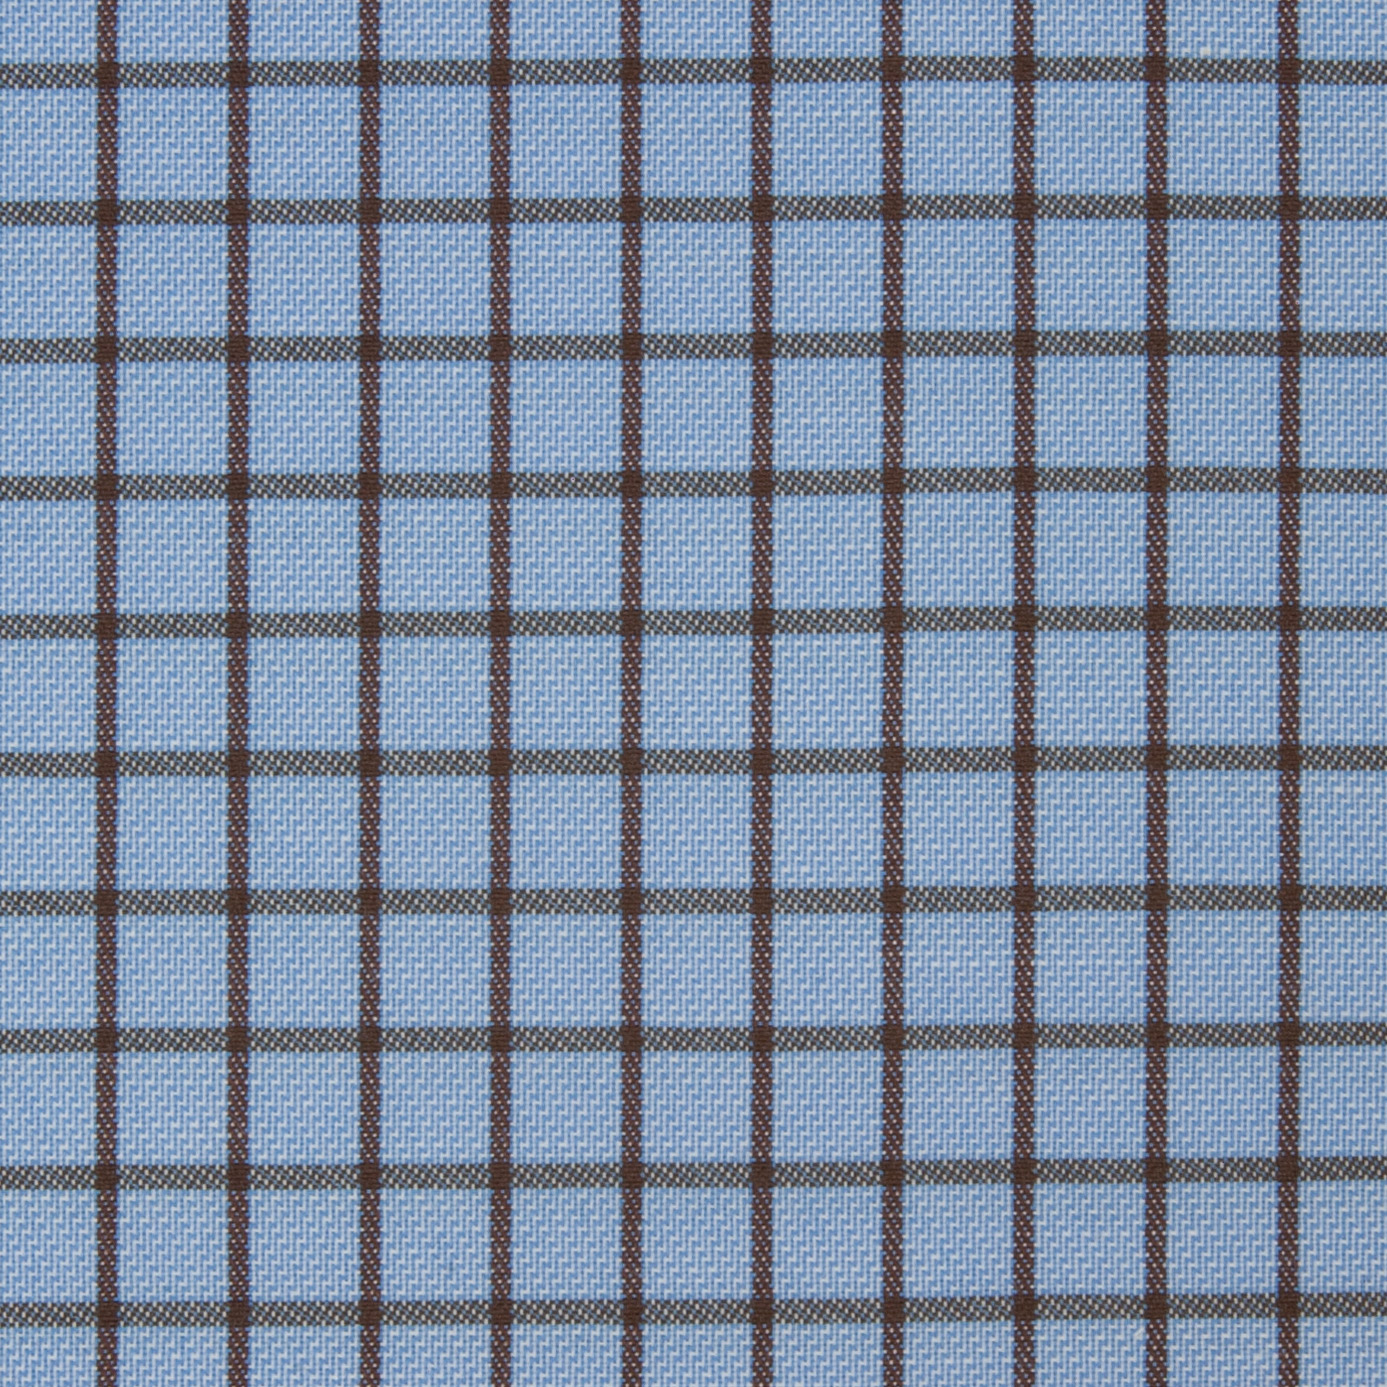 Buy tailor made shirts online - Arturo Collection - Brown Check on Blue